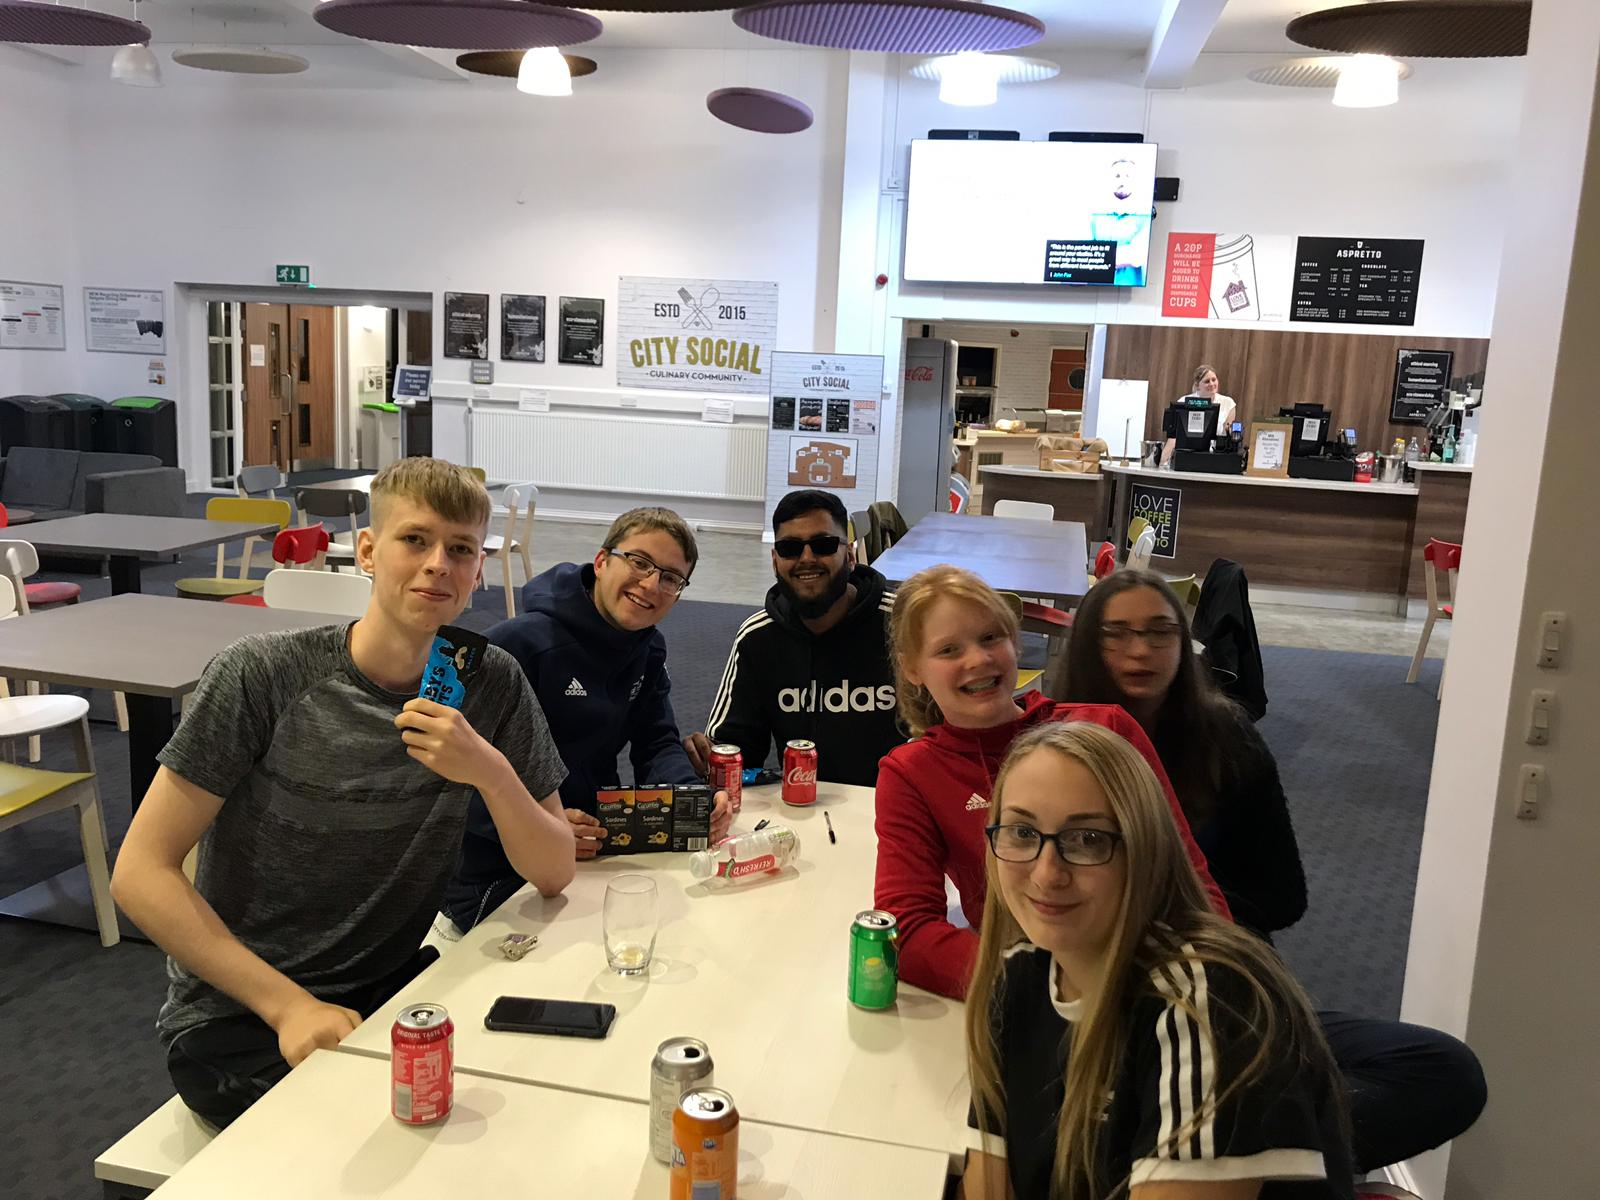 Stuart, Sam, Chelsea, Naqib, Joe and Ciara at the quiz on Saturday night